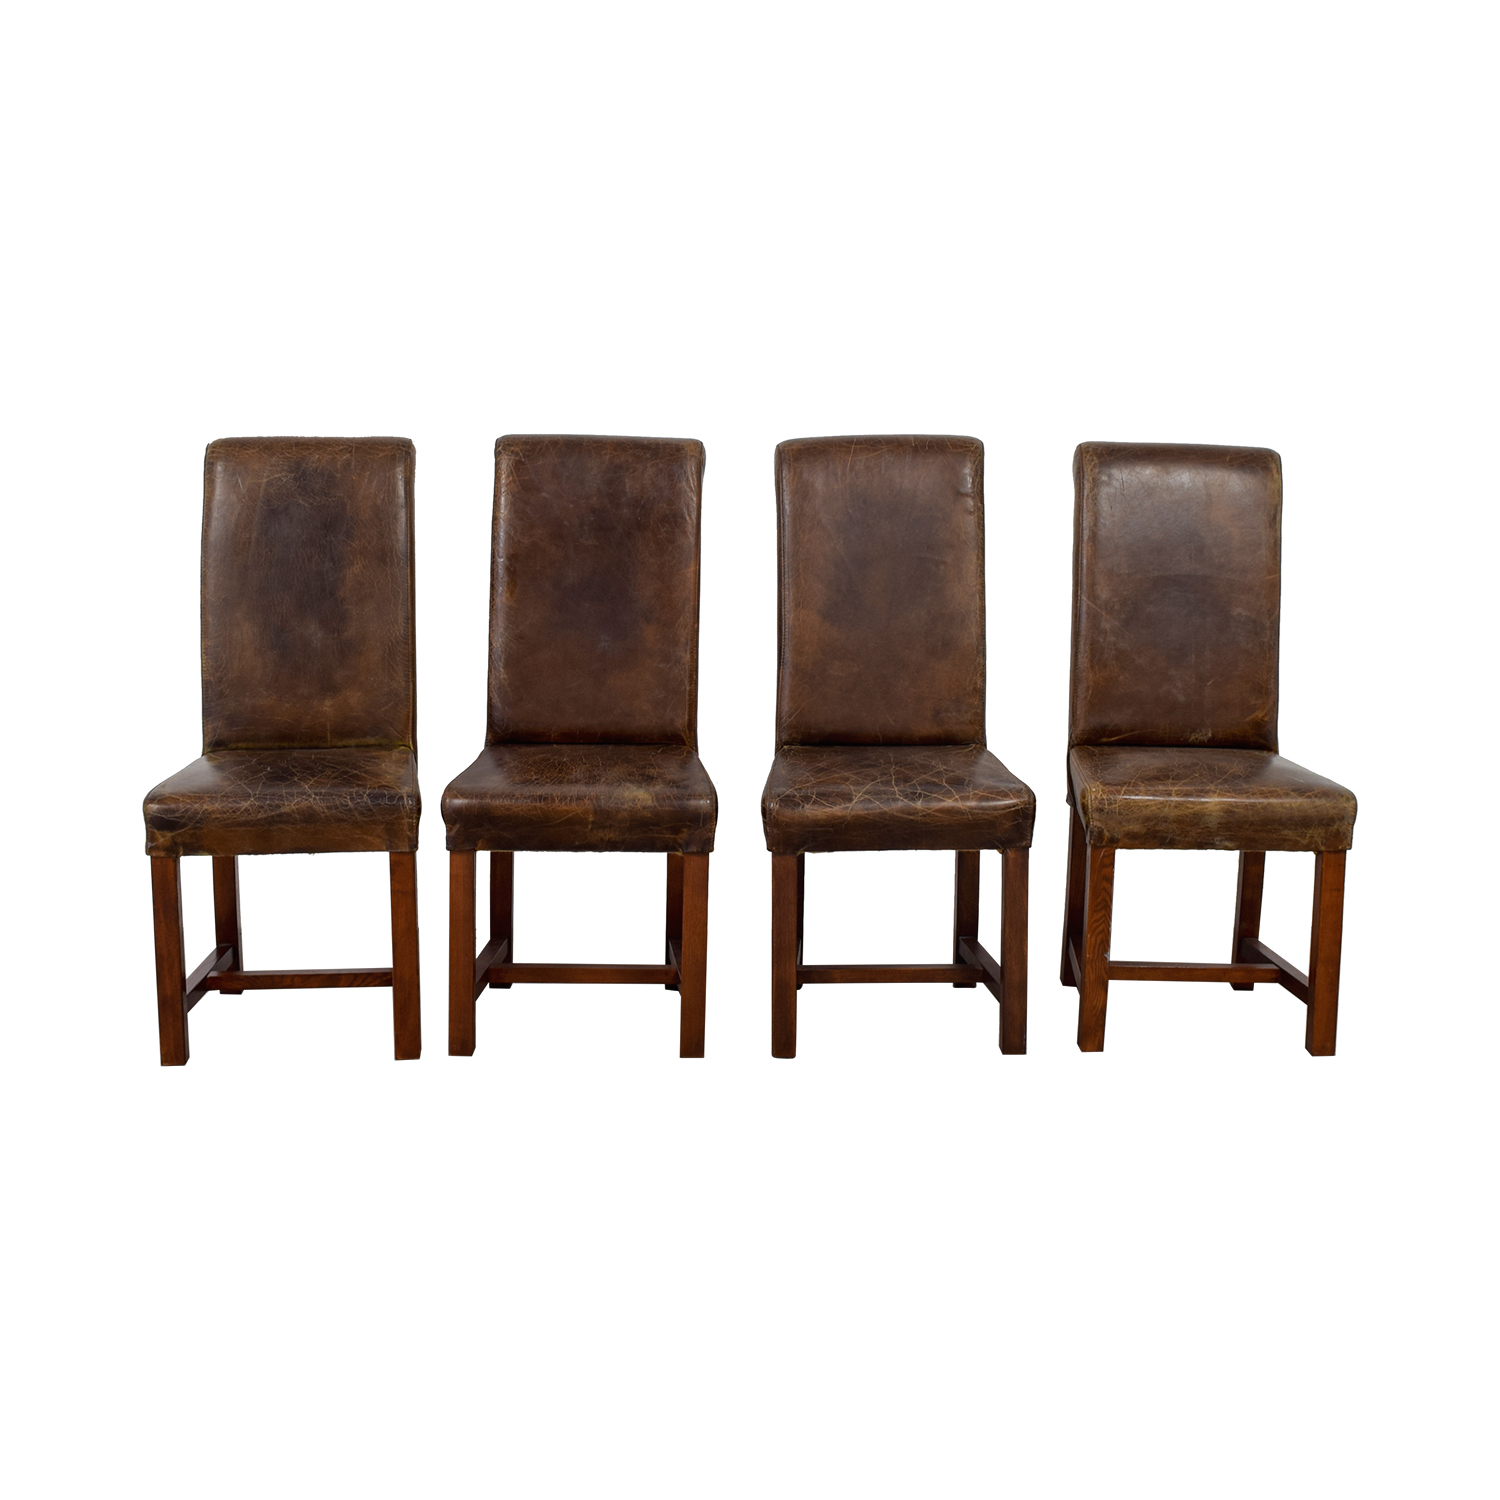 Buy Faulkner Distressed Brown Leather Chairs Faulkner Chairs ...